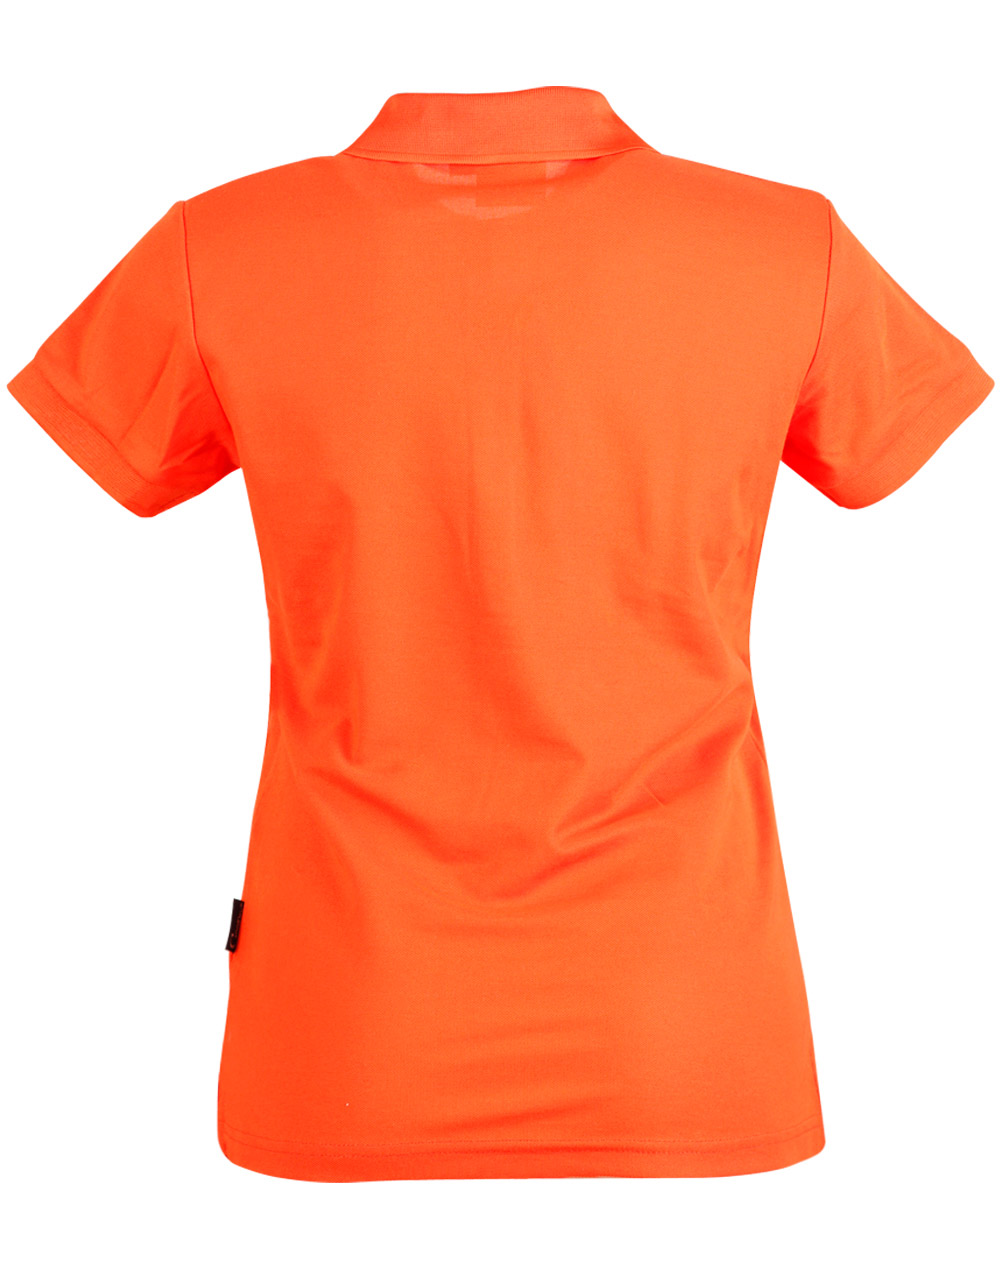 https://s3-ap-southeast-1.amazonaws.com/ws-imgs/POLOSHIRTS/PS64_Orange_Back.jpg